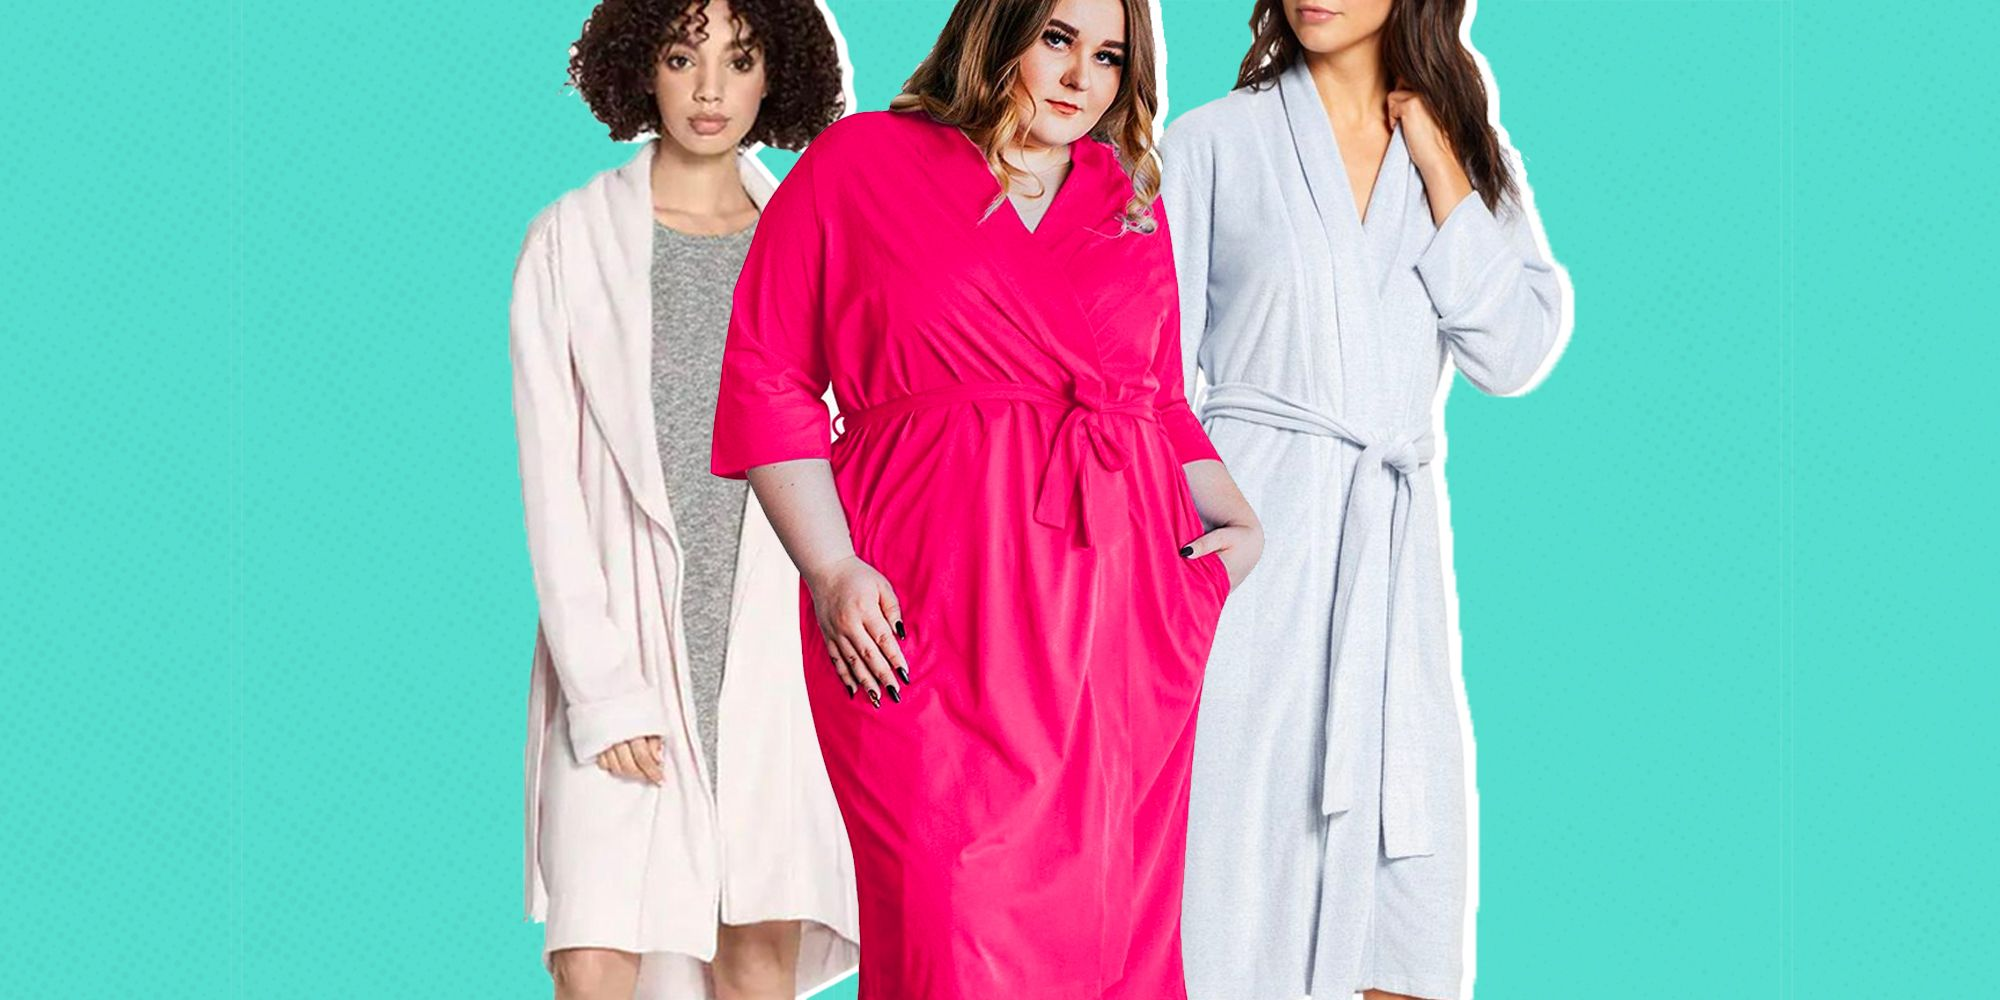 21 Best Bathrobes for Women 2020 Plush, Comfortable Bathrobes